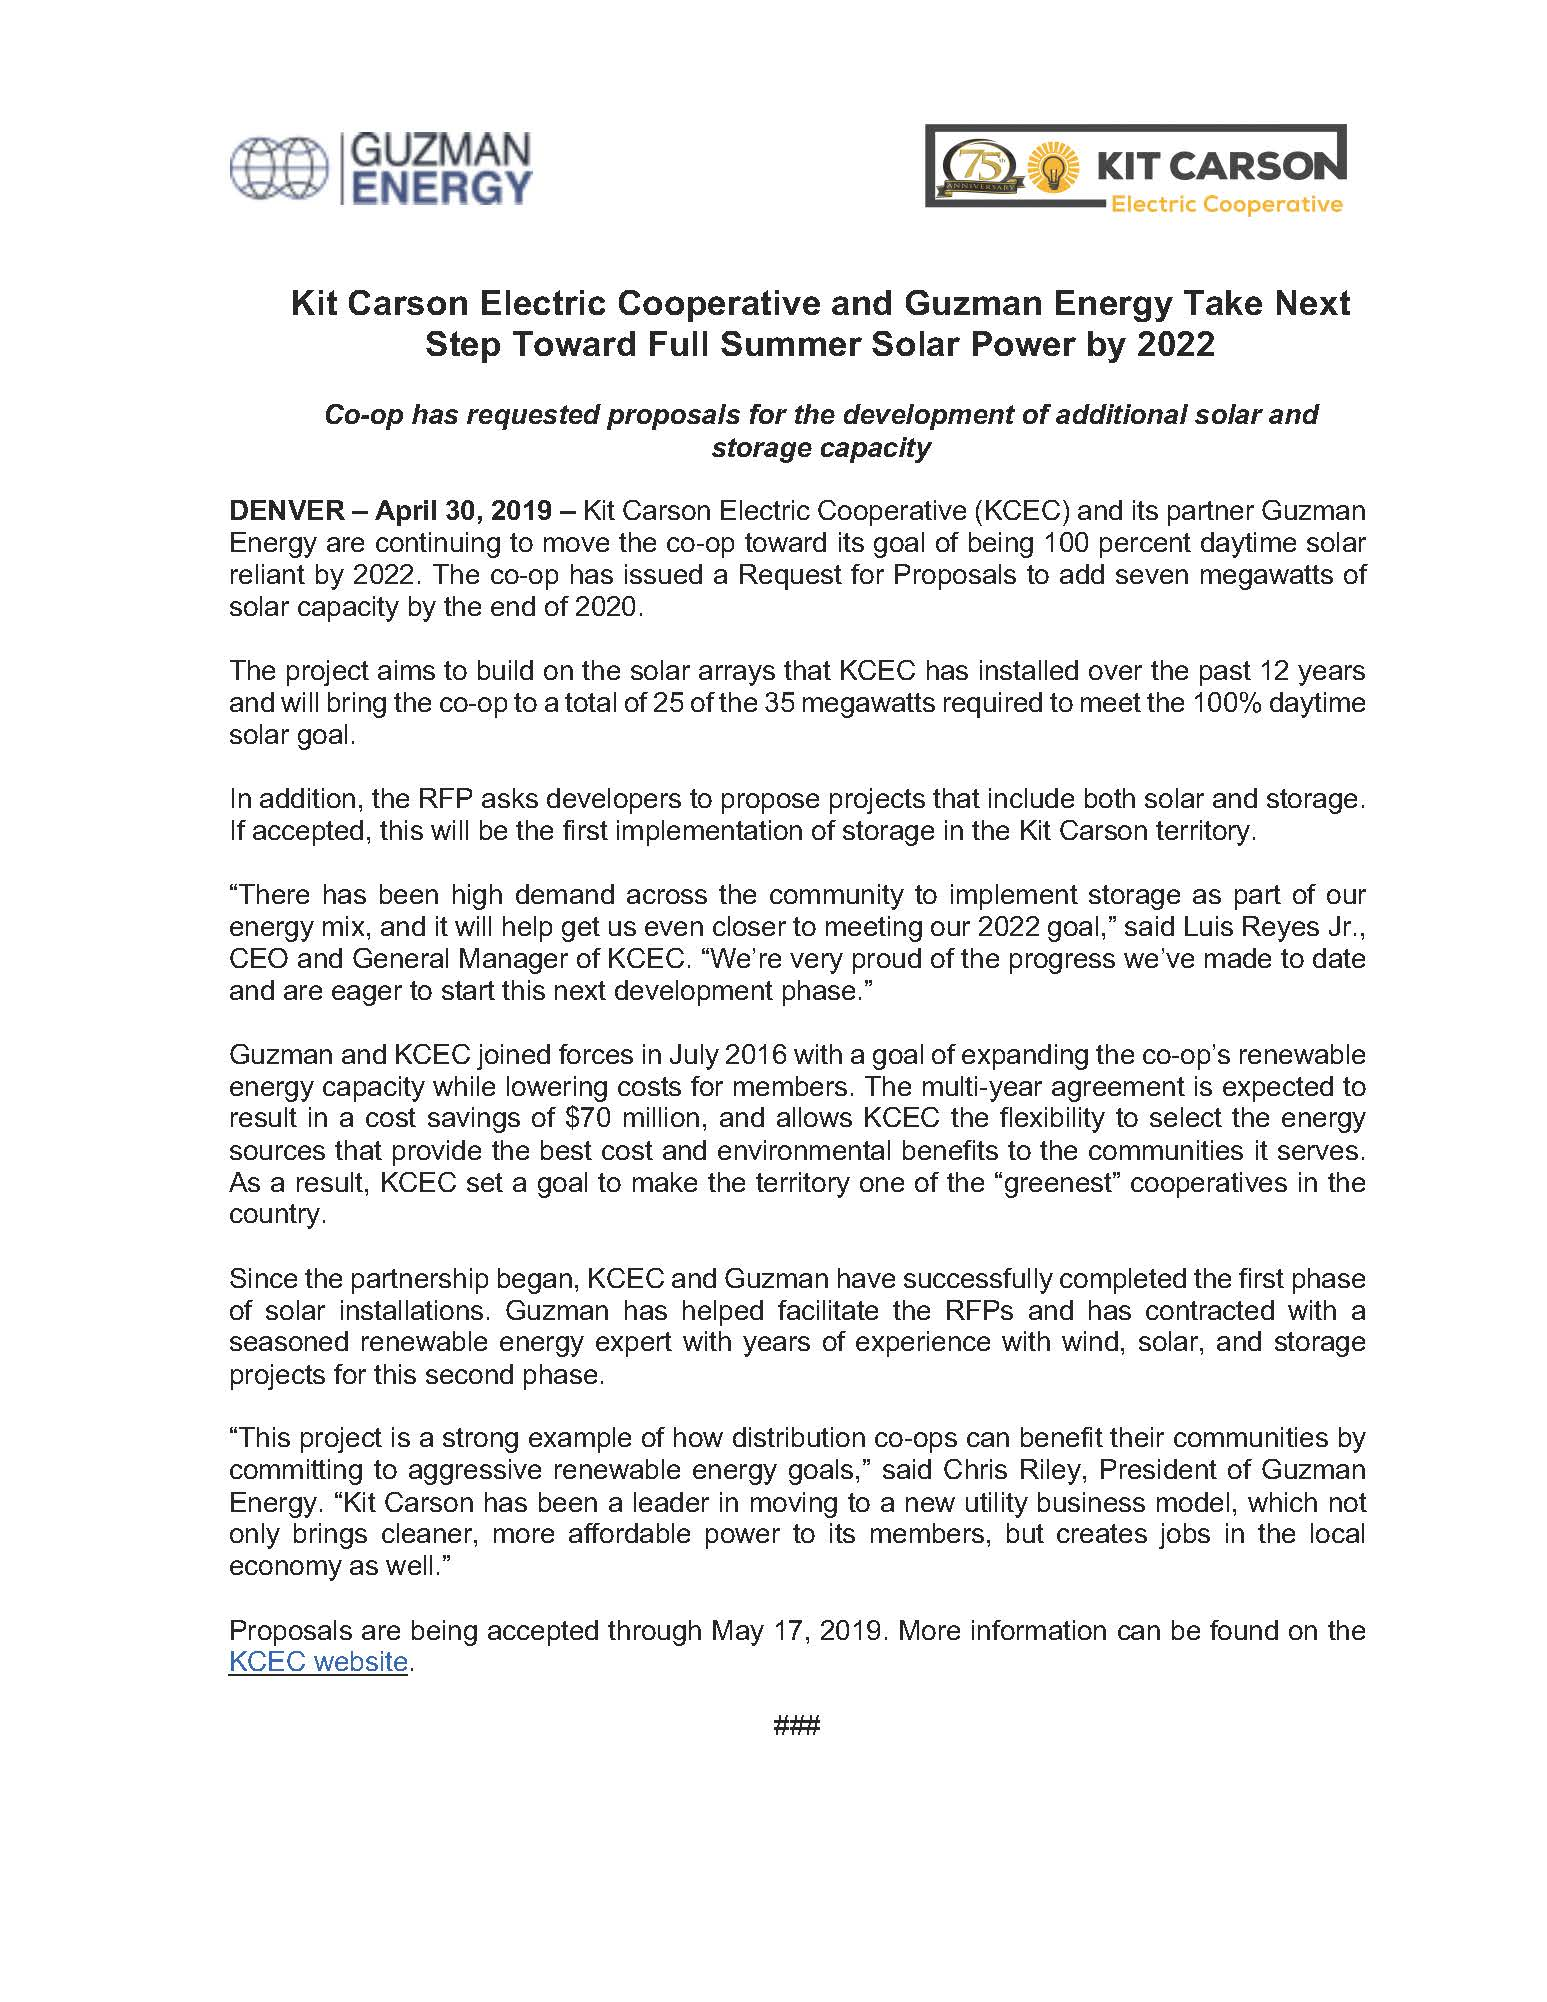 Kit Carson Electric Cooperative and Guzman Energy Take Next Step